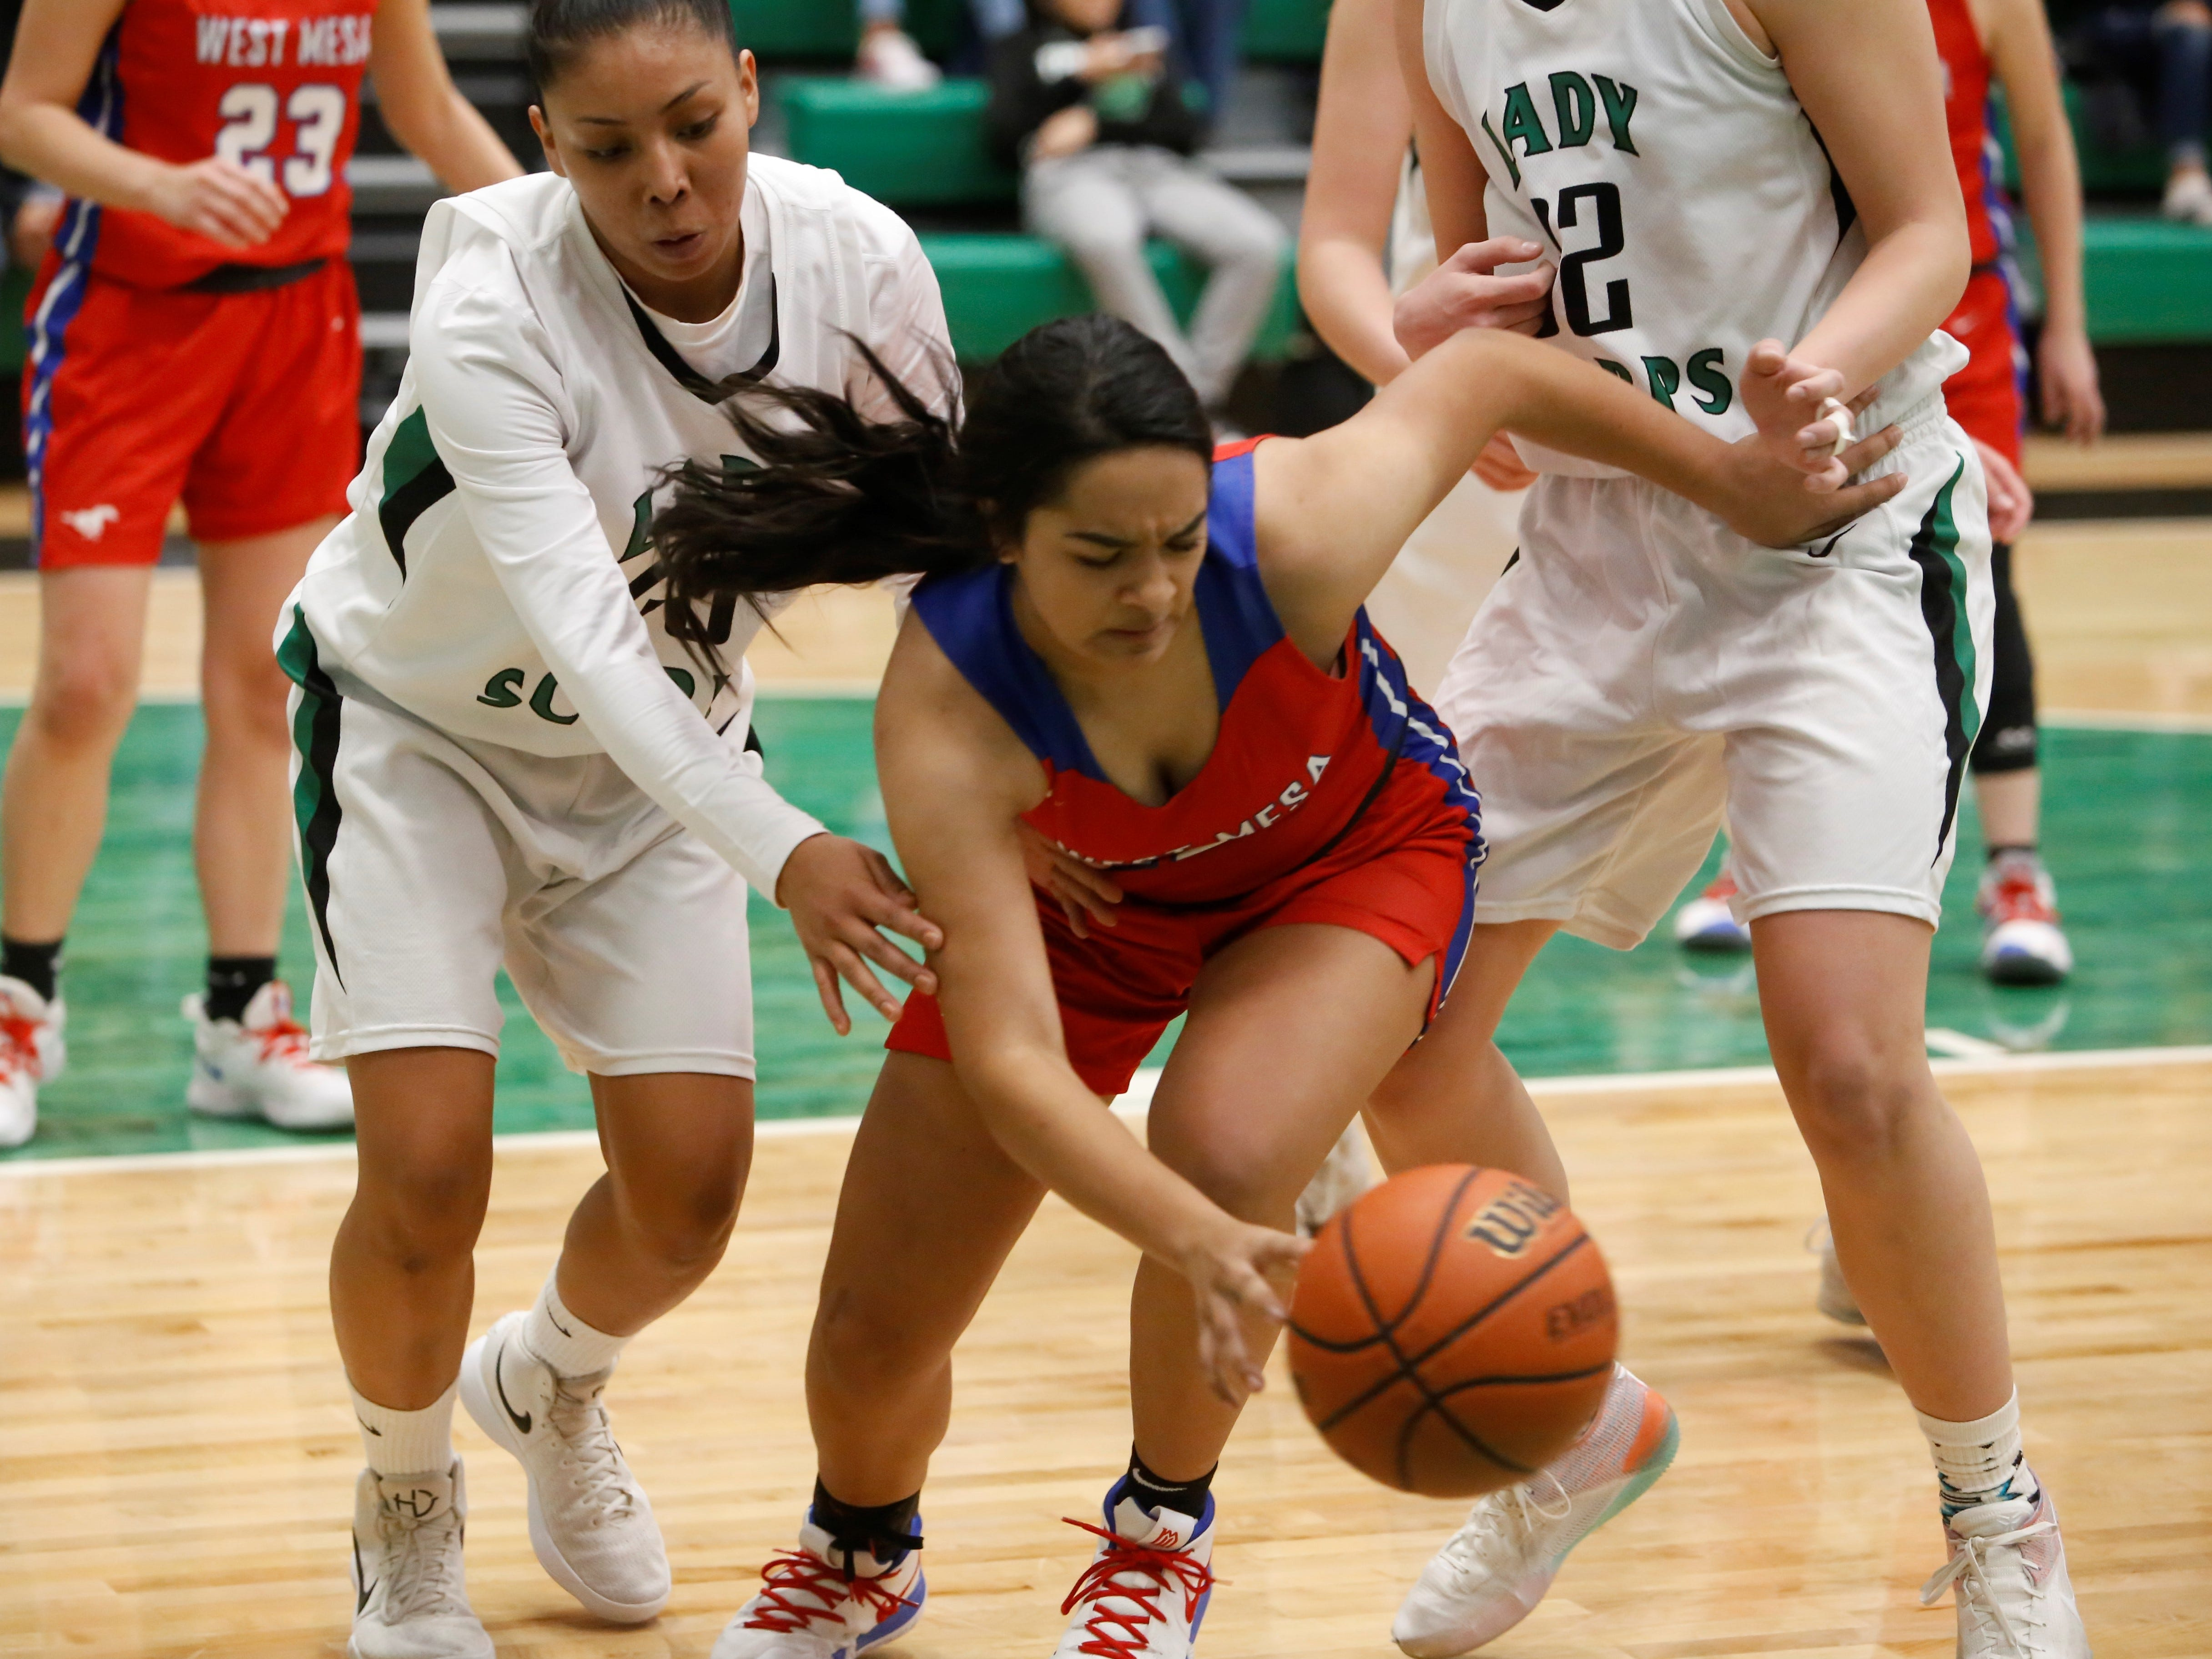 West Mesa's Cece Barela chases after a loose ball with Farmington's Davina Begay on her tail during Tuesday's District 2-5A game at Scorpion Arena in Farmington.